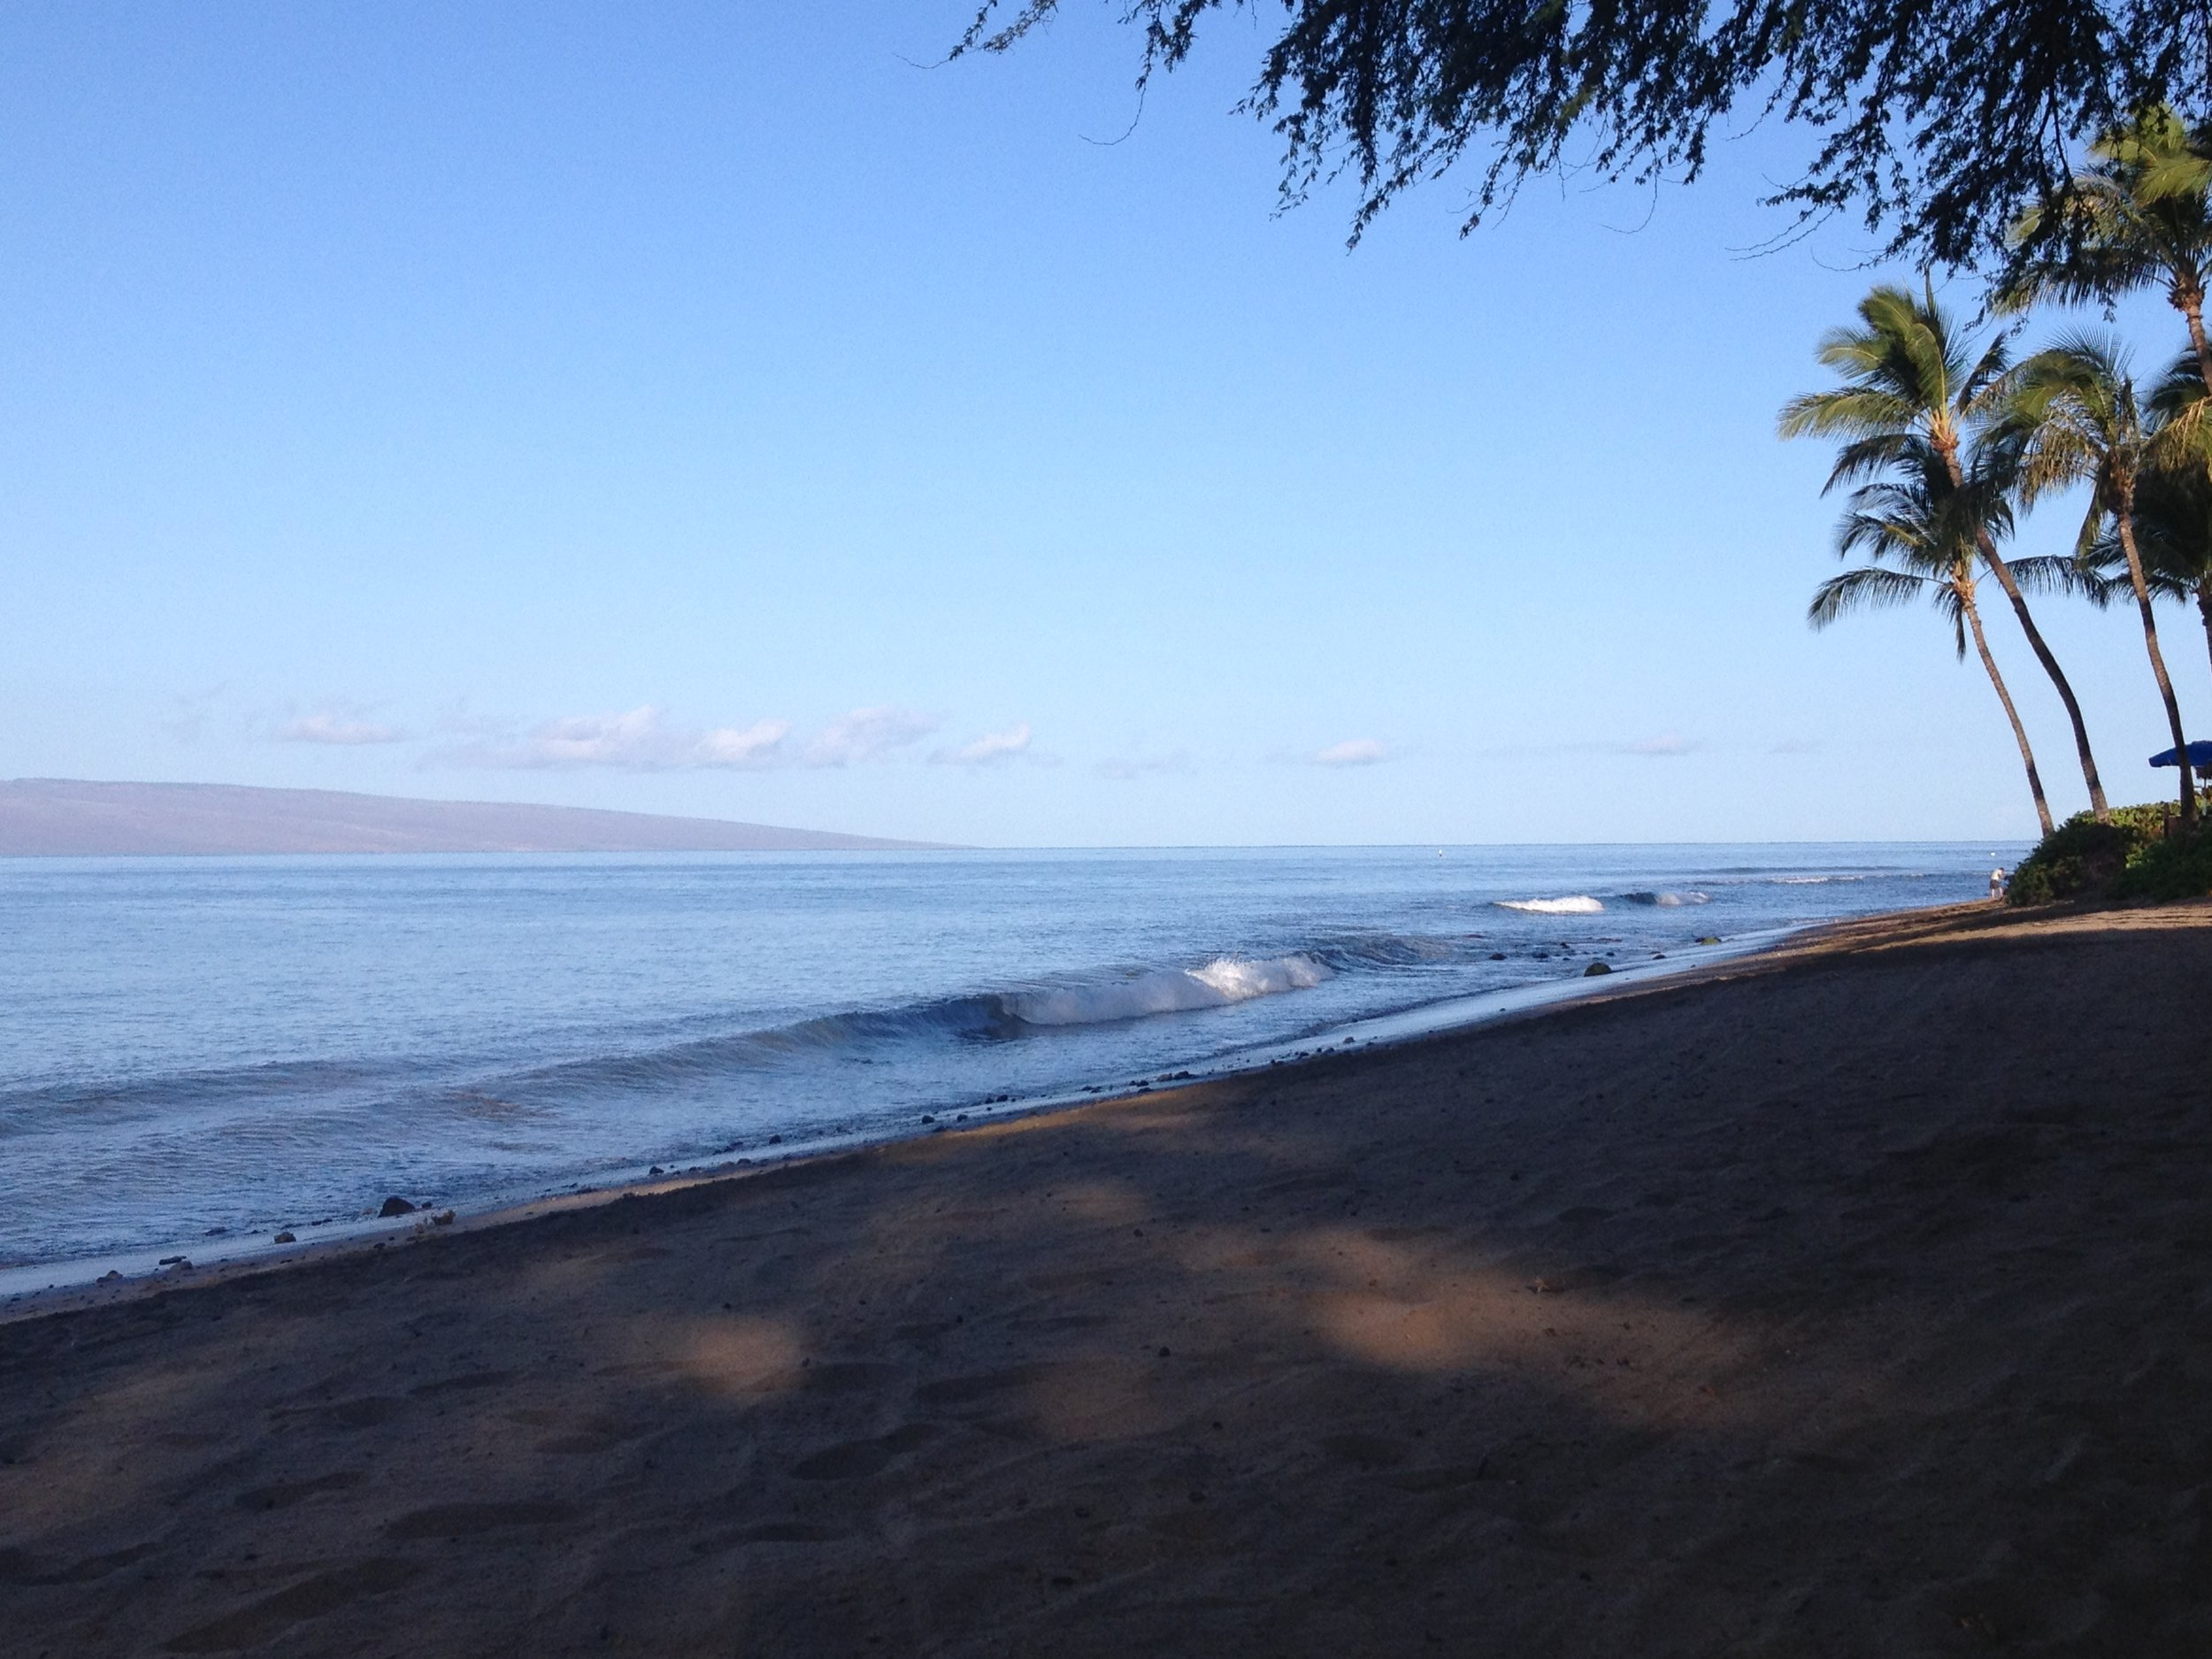 Beach after a morning walk in Maui.